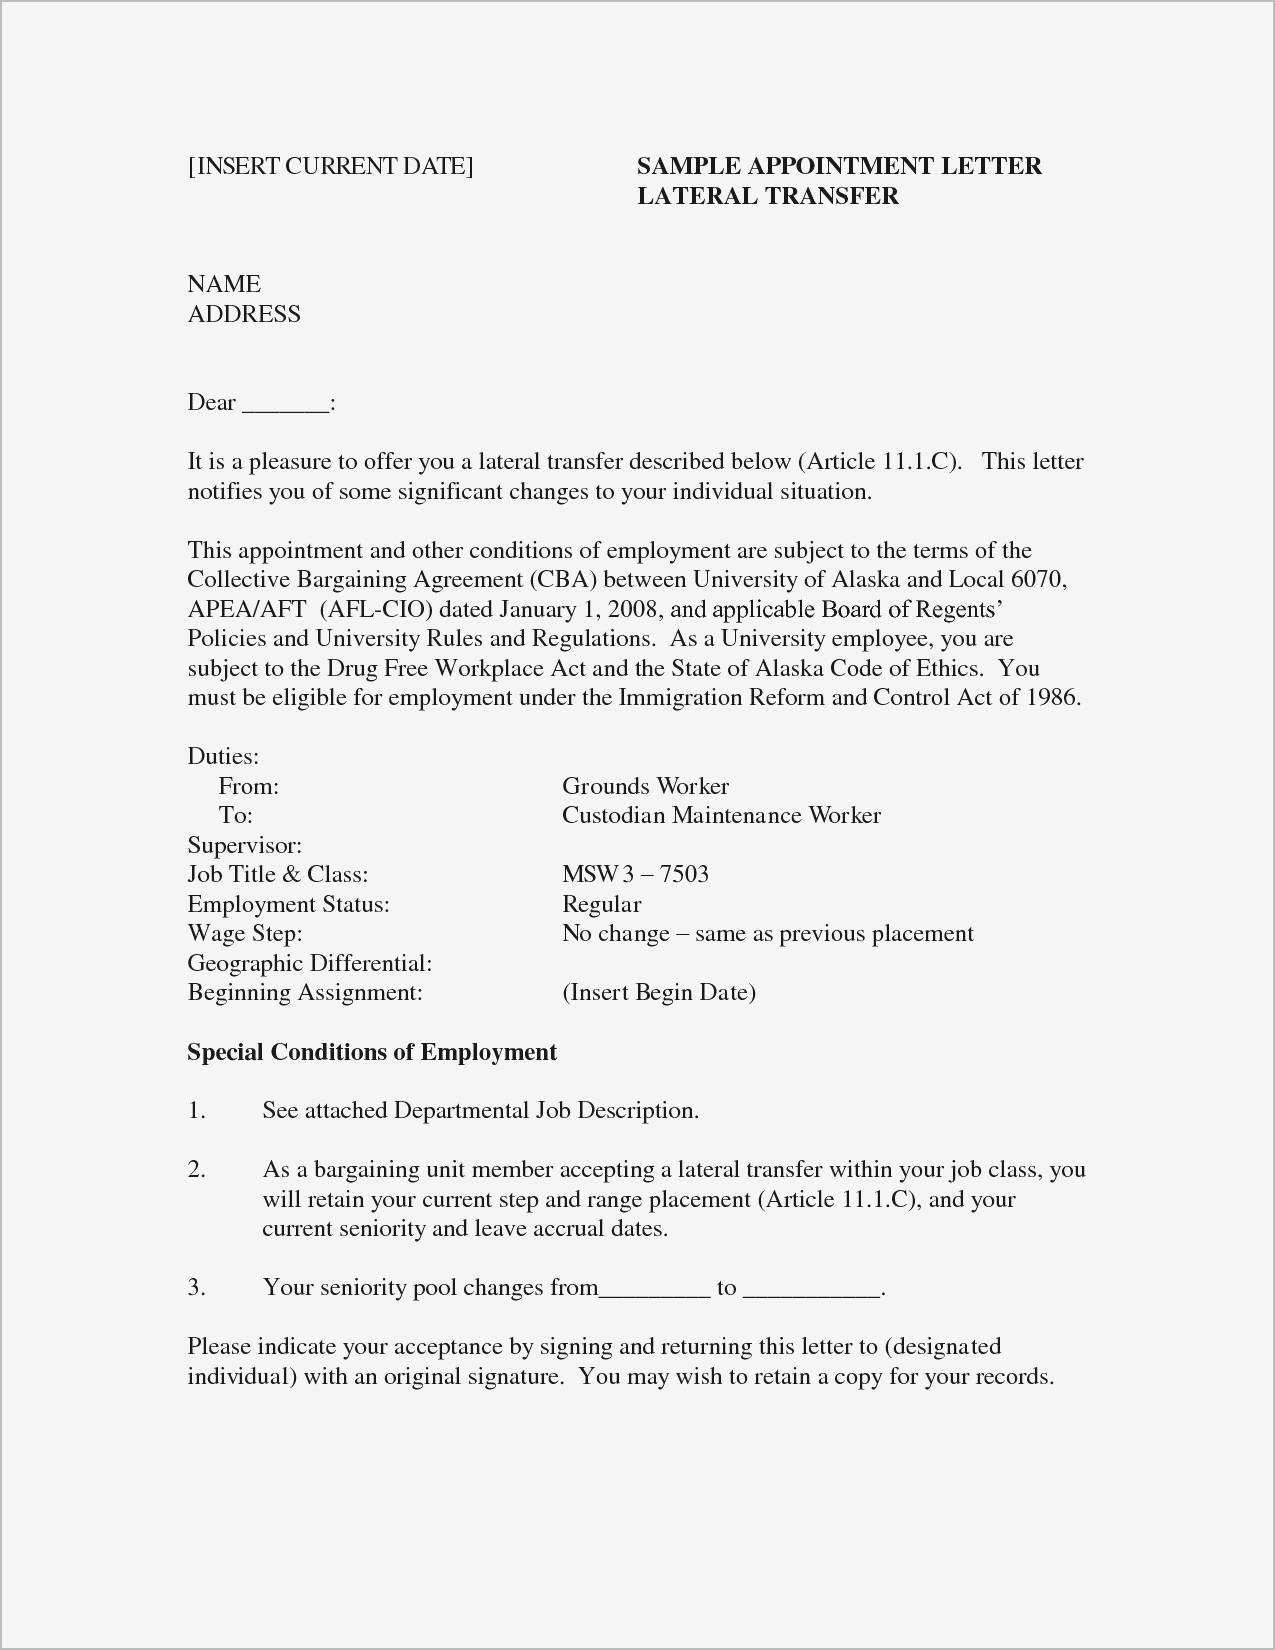 Sample Hire Letter Template - Sample Cover Letter for Job Fer Refrence Job Fer Letter Template